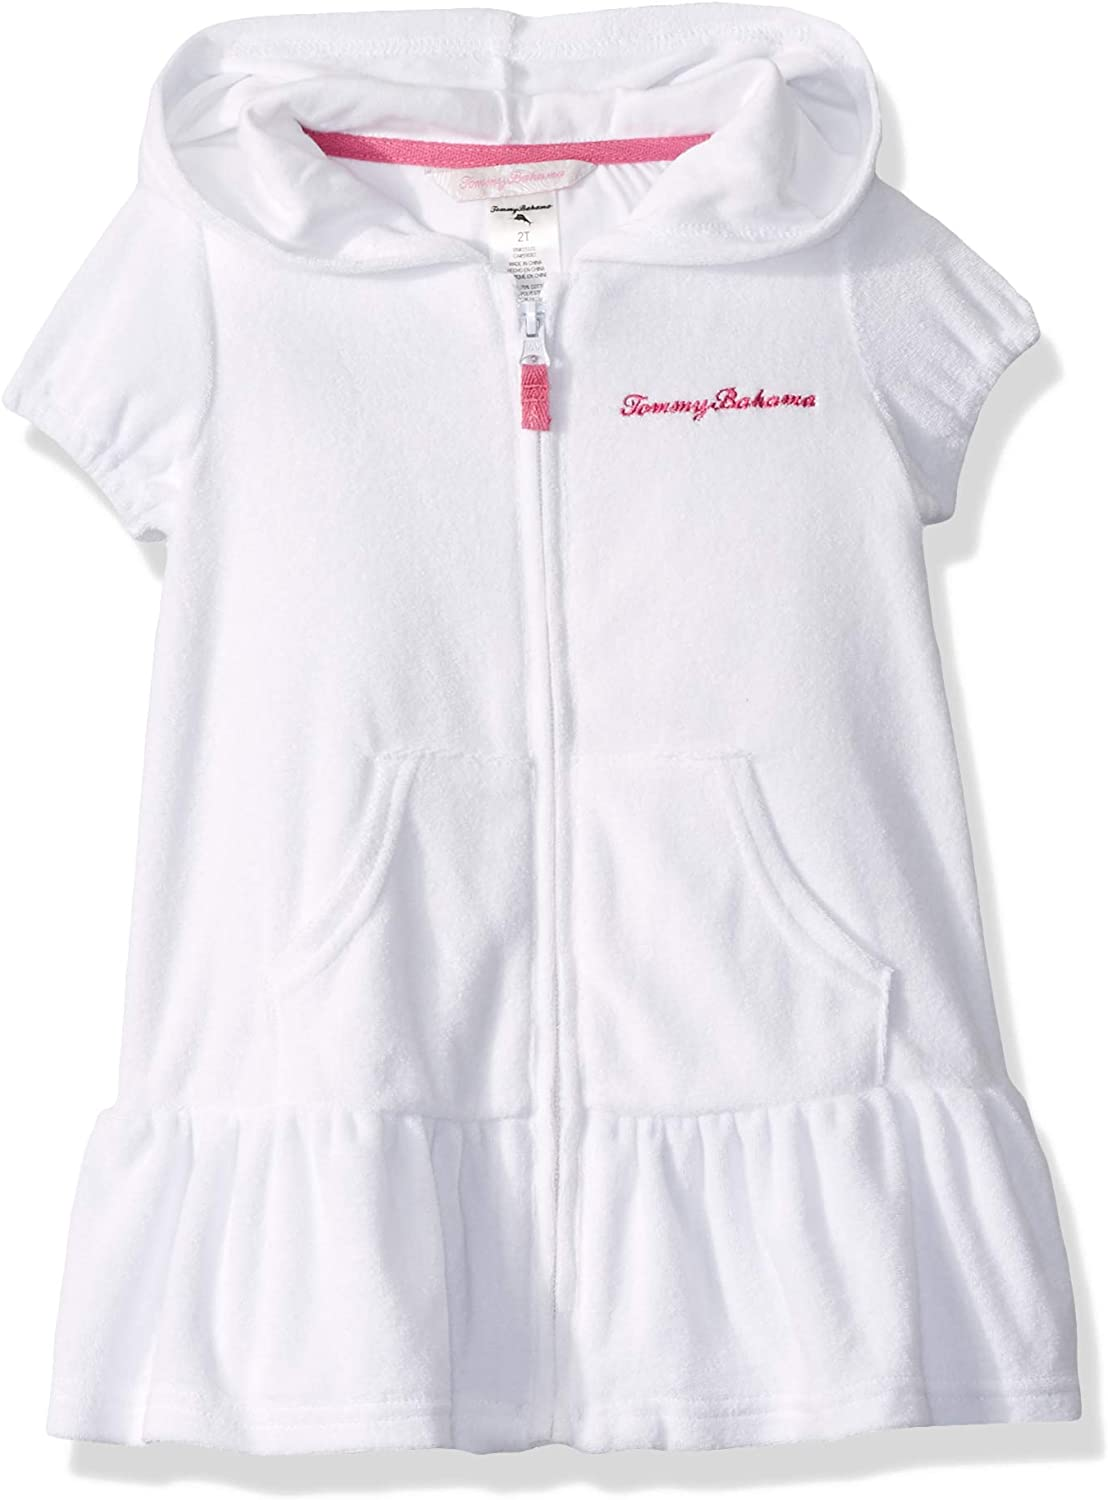 Tommy Bahama Girls Zip Front Swimsuit Cover Up